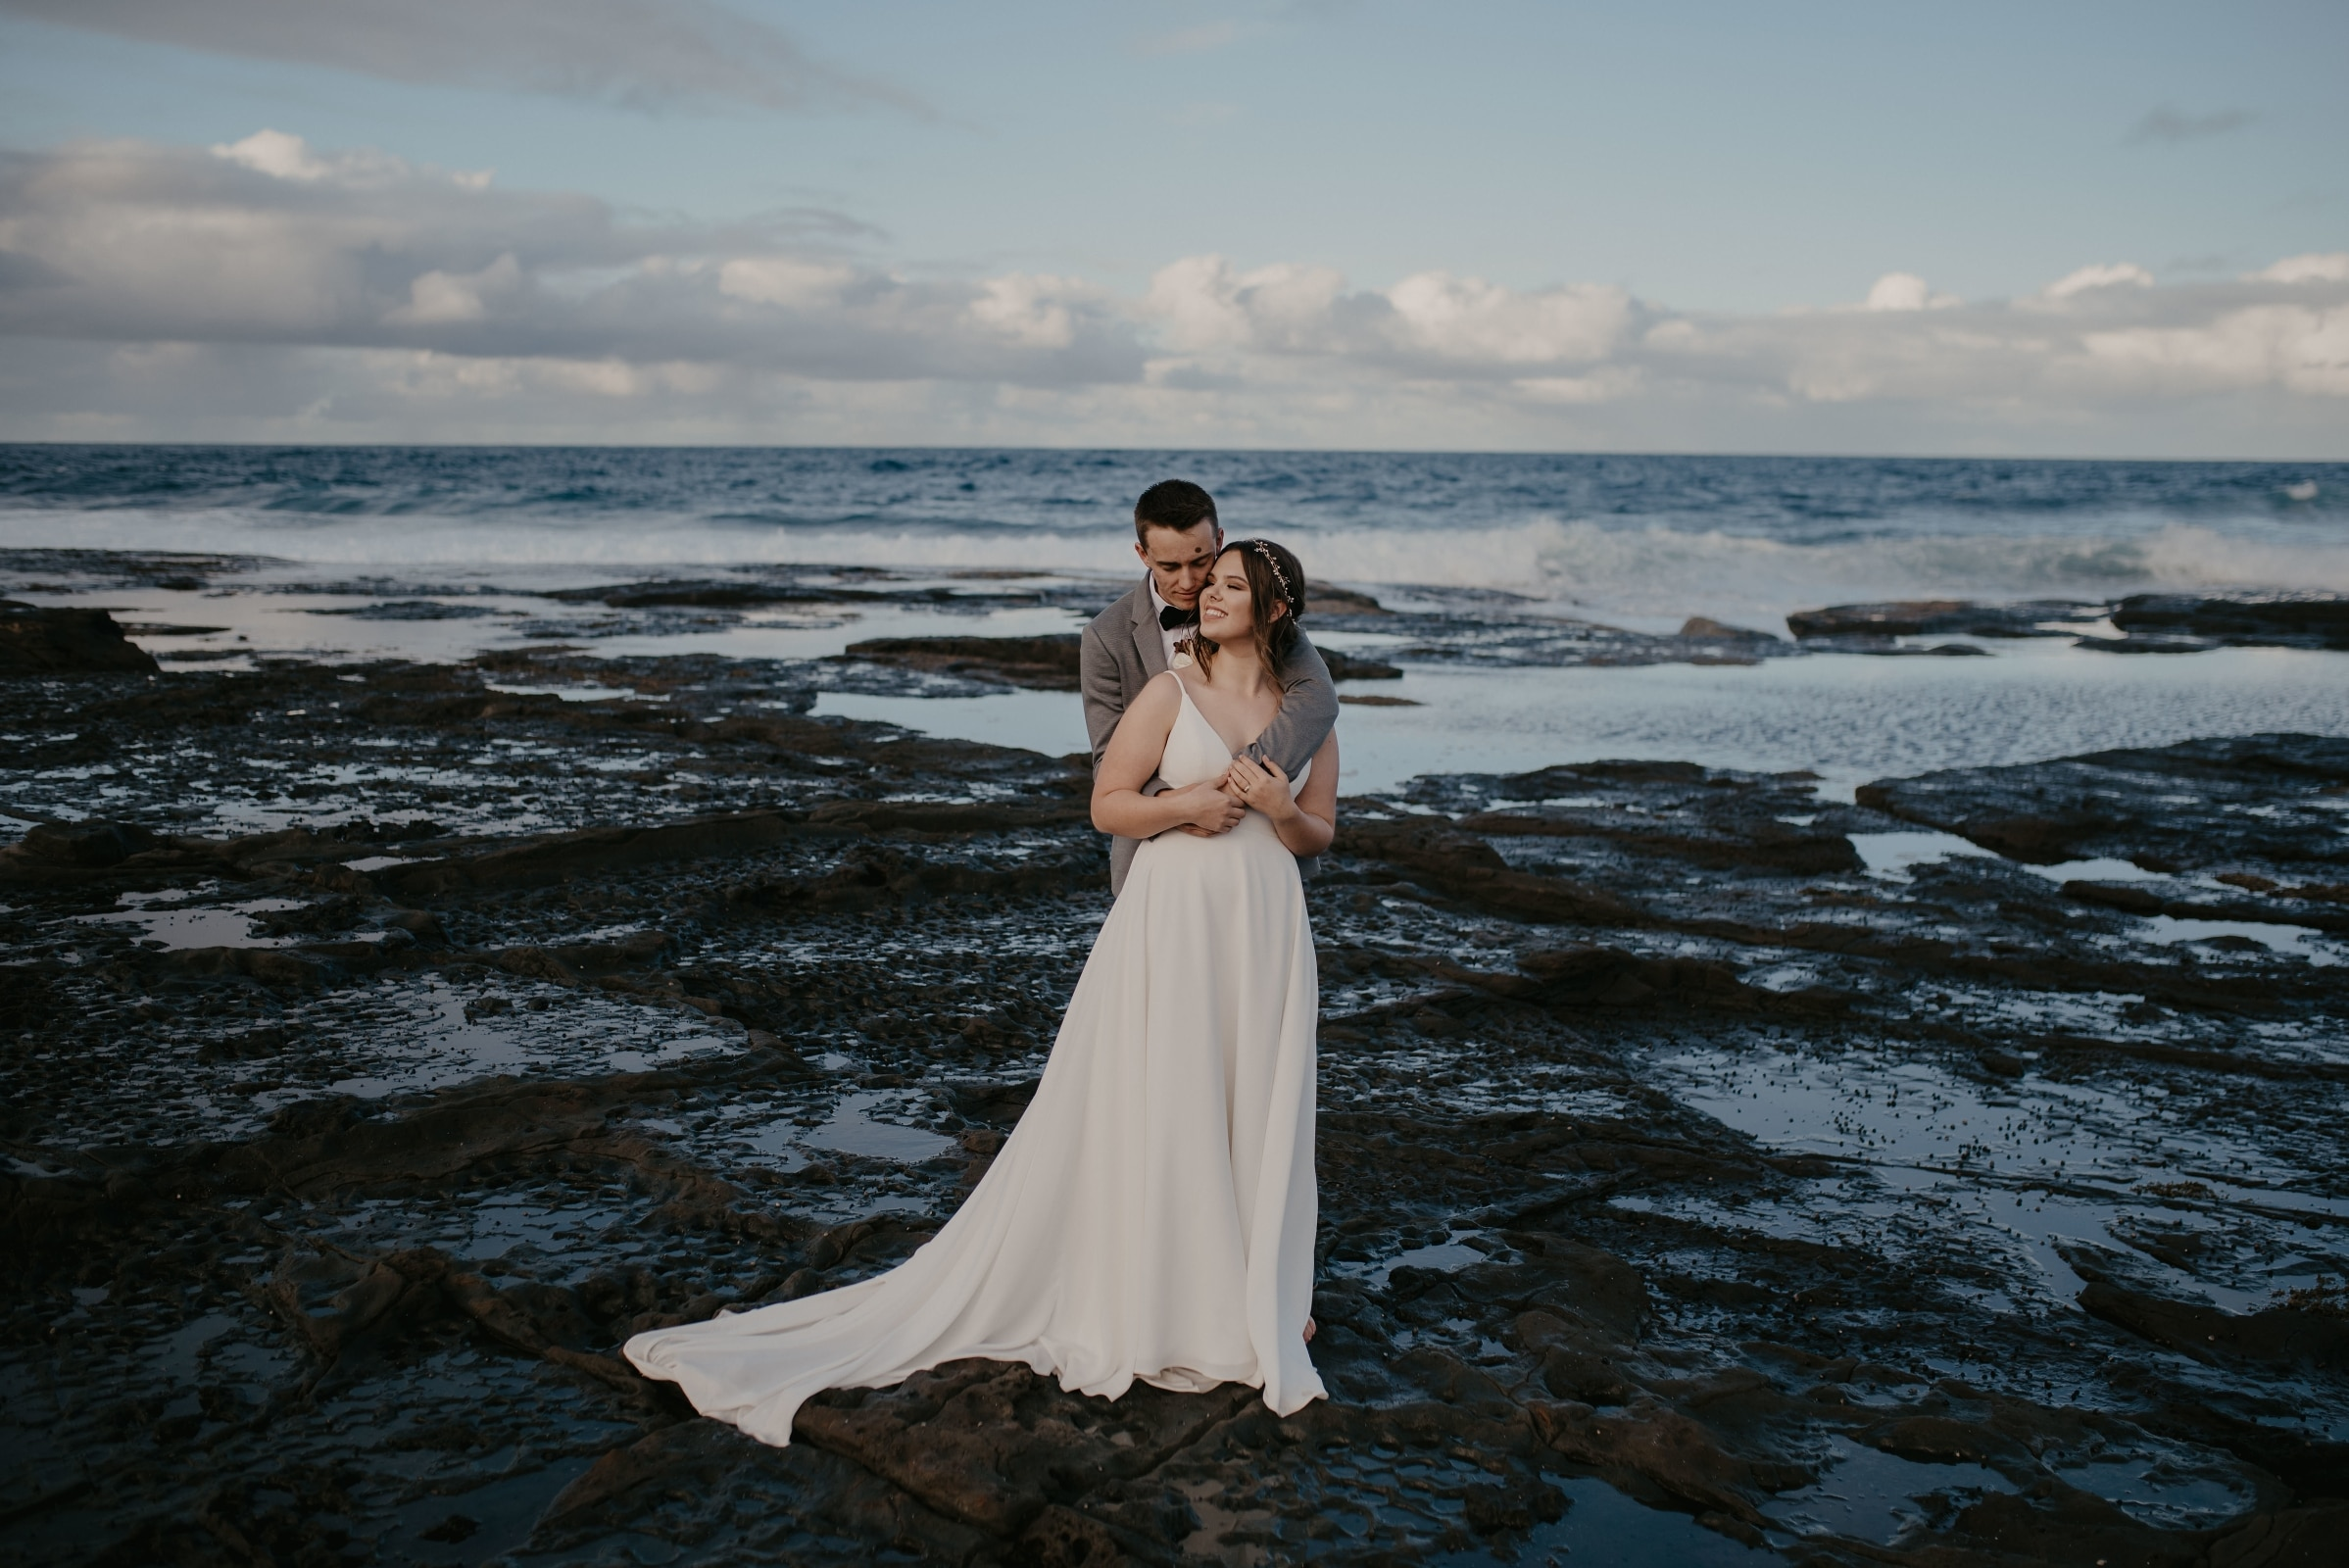 A groom is hugging his bride from behind and kissing her on the cheek. They are standing in the middle of a headland with the ocean making waves behind them. Their adventure elopement photos were taken by Virginia Evan.